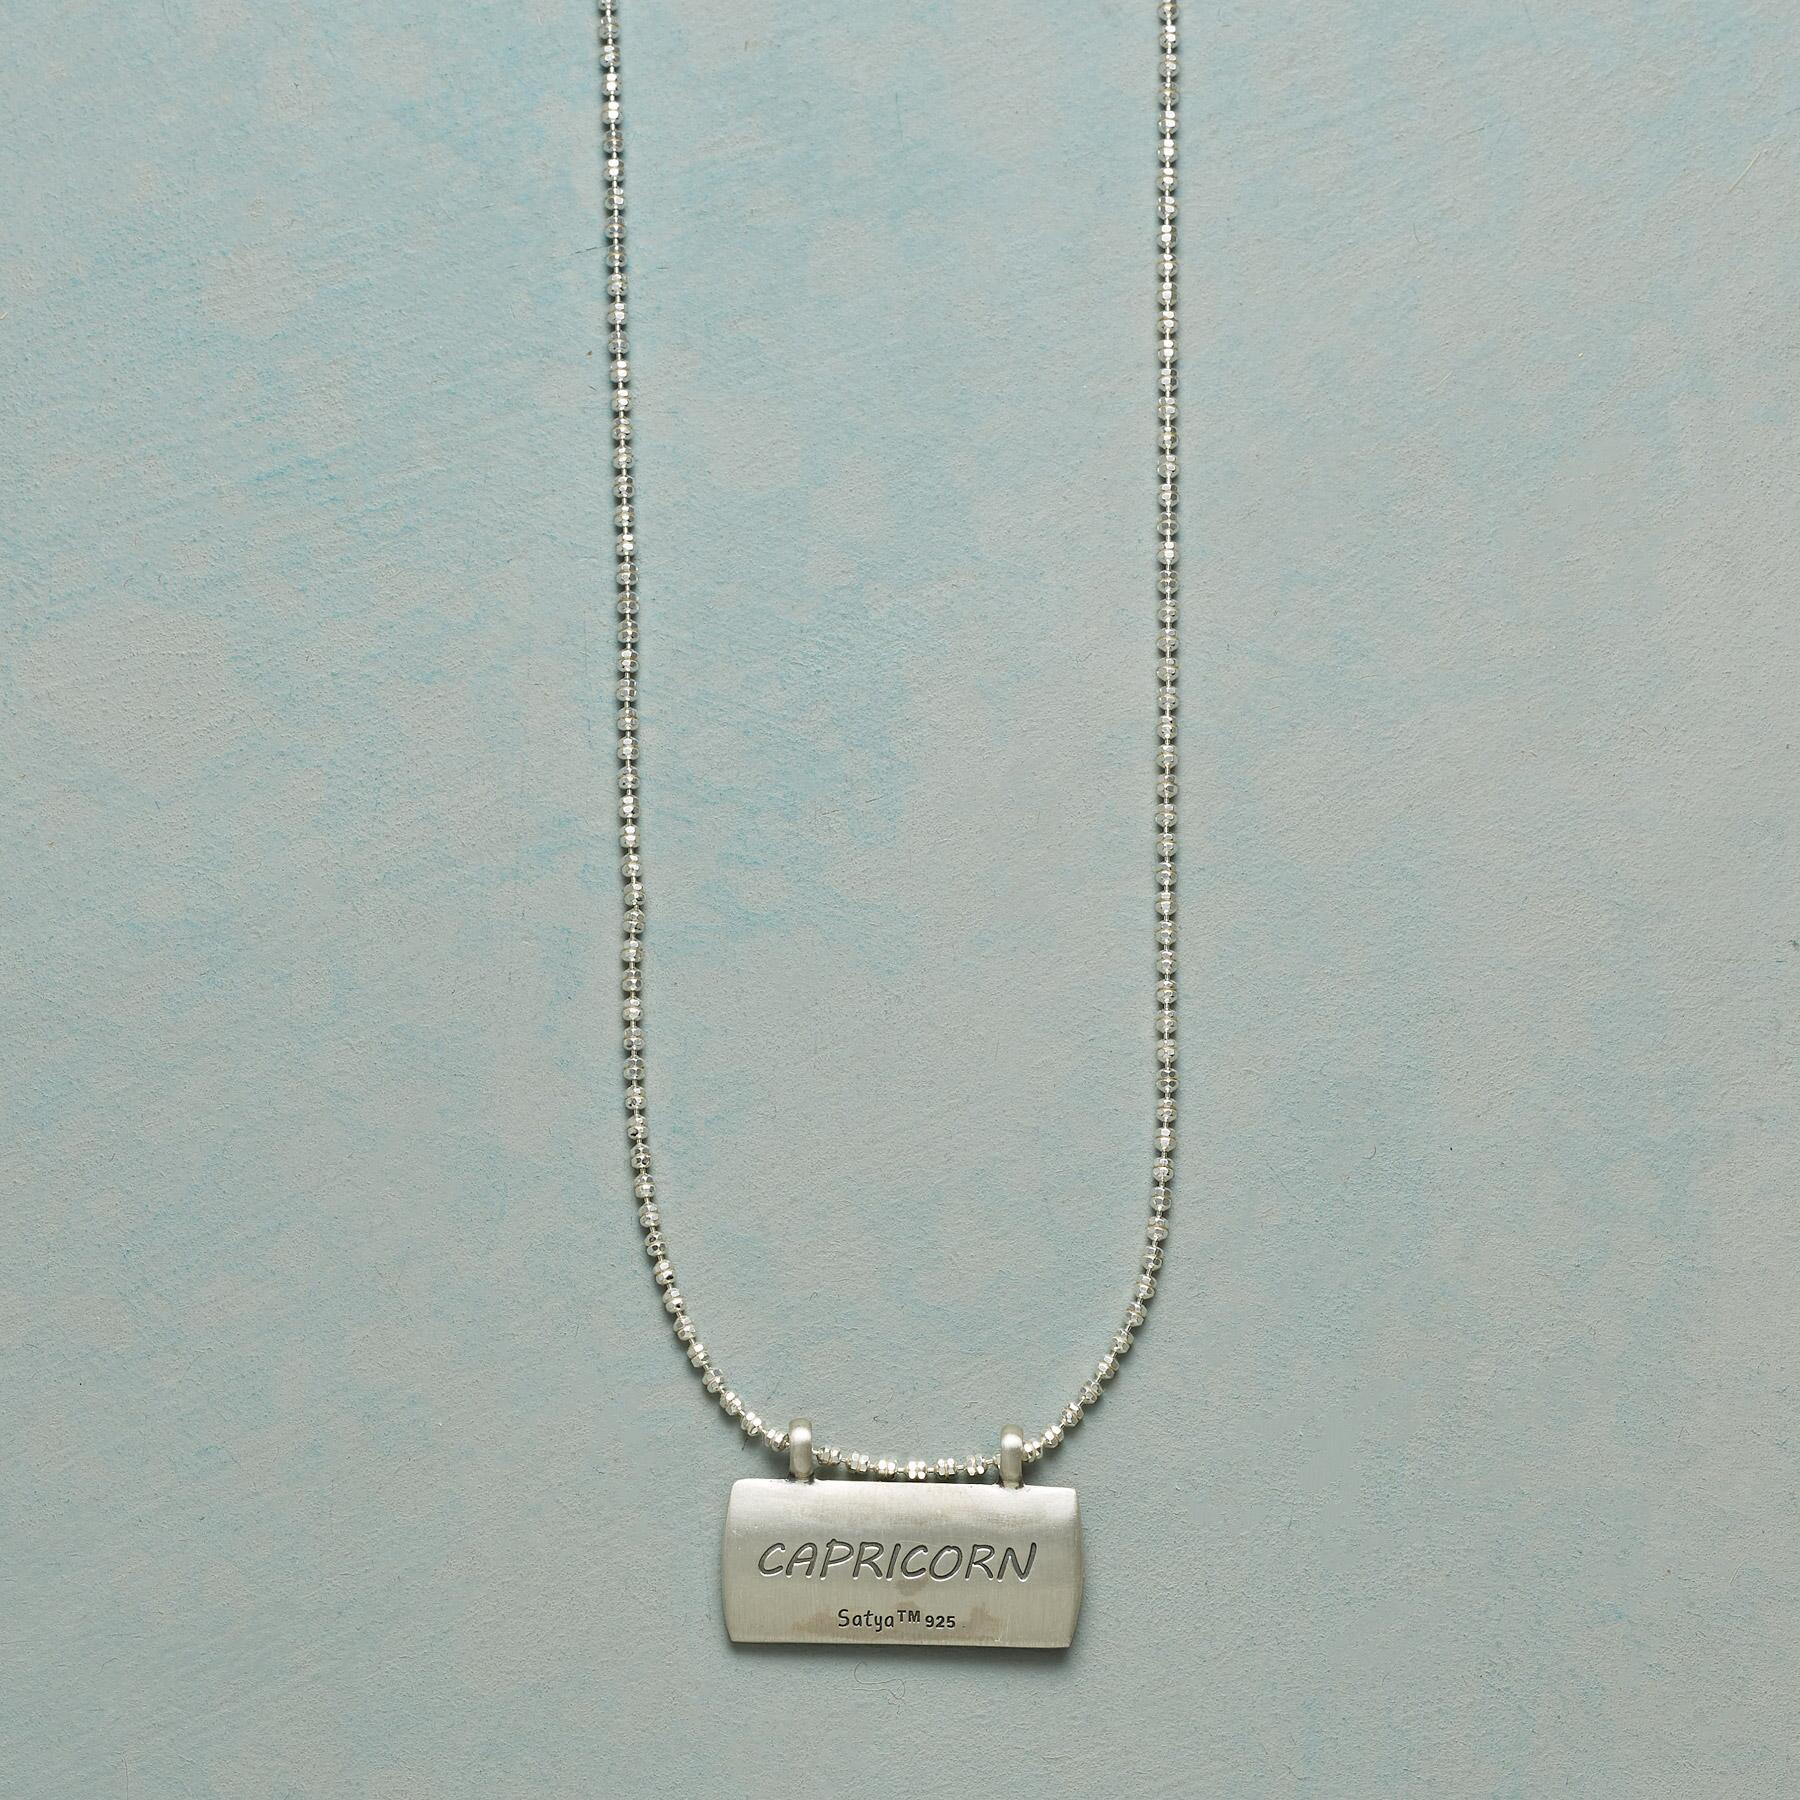 STERLING SILVER ASTROLOGICAL PENDANT NECKLACE: View 3